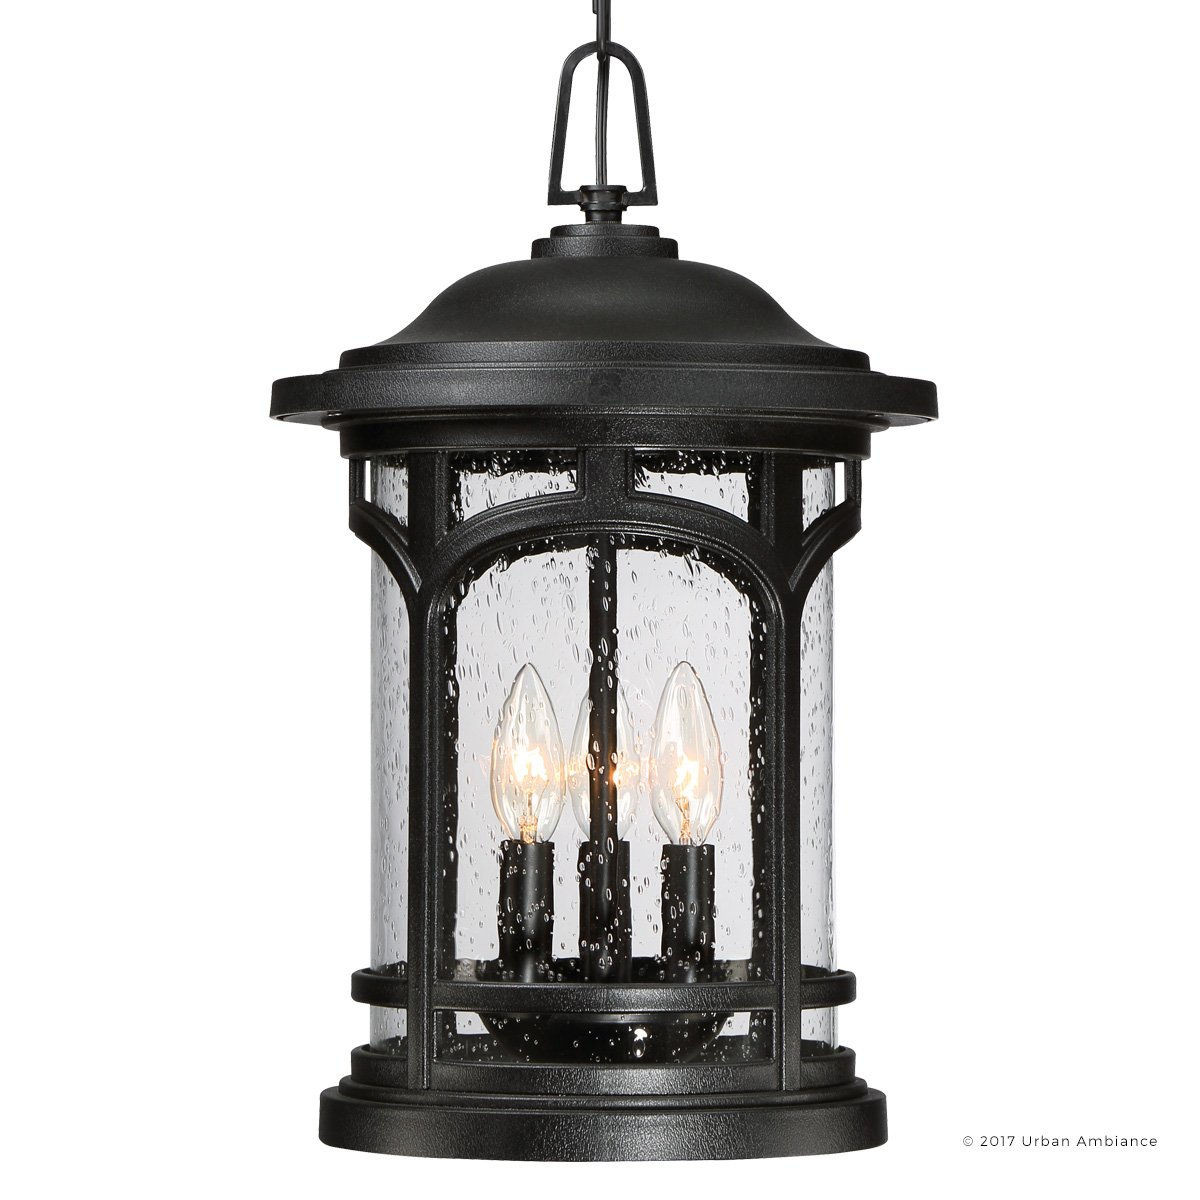 Luxury Rustic Outdoor Pendant Light, Large Size: 18''H x 11''W, with Colonial Style Elements, Wrought Iron Design, High-End Black Silk Finish and Seeded Glass, UQL1108 by Urban Ambiance by Urban Ambiance